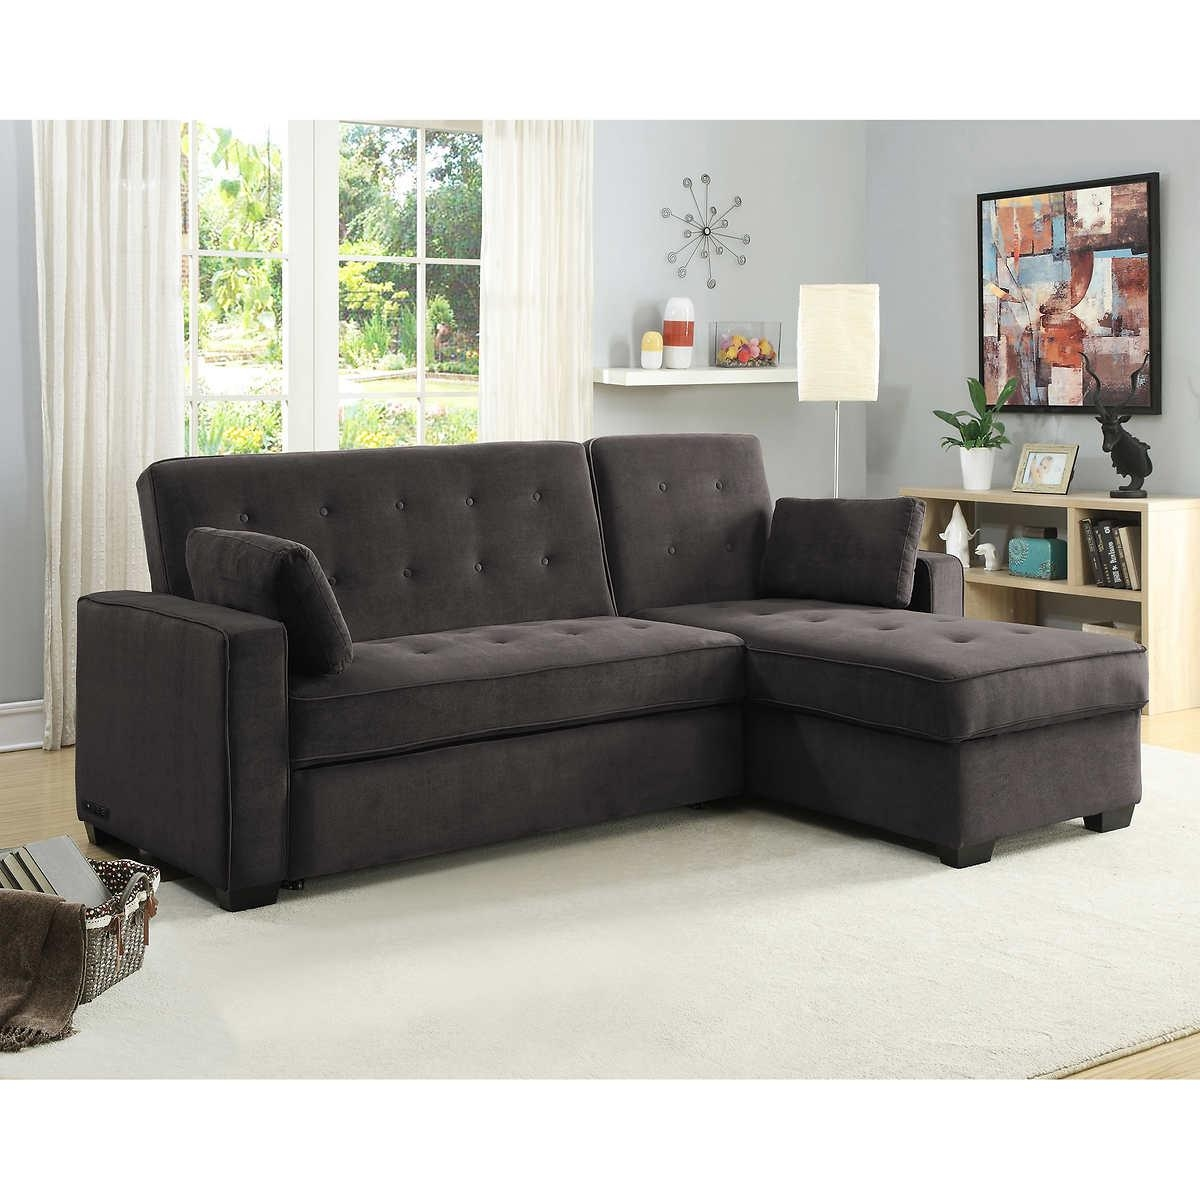 Sofas Center : Stunning Costcoecliner Sofa Images Concept Throughout Berkline Sofa (Image 19 of 20)